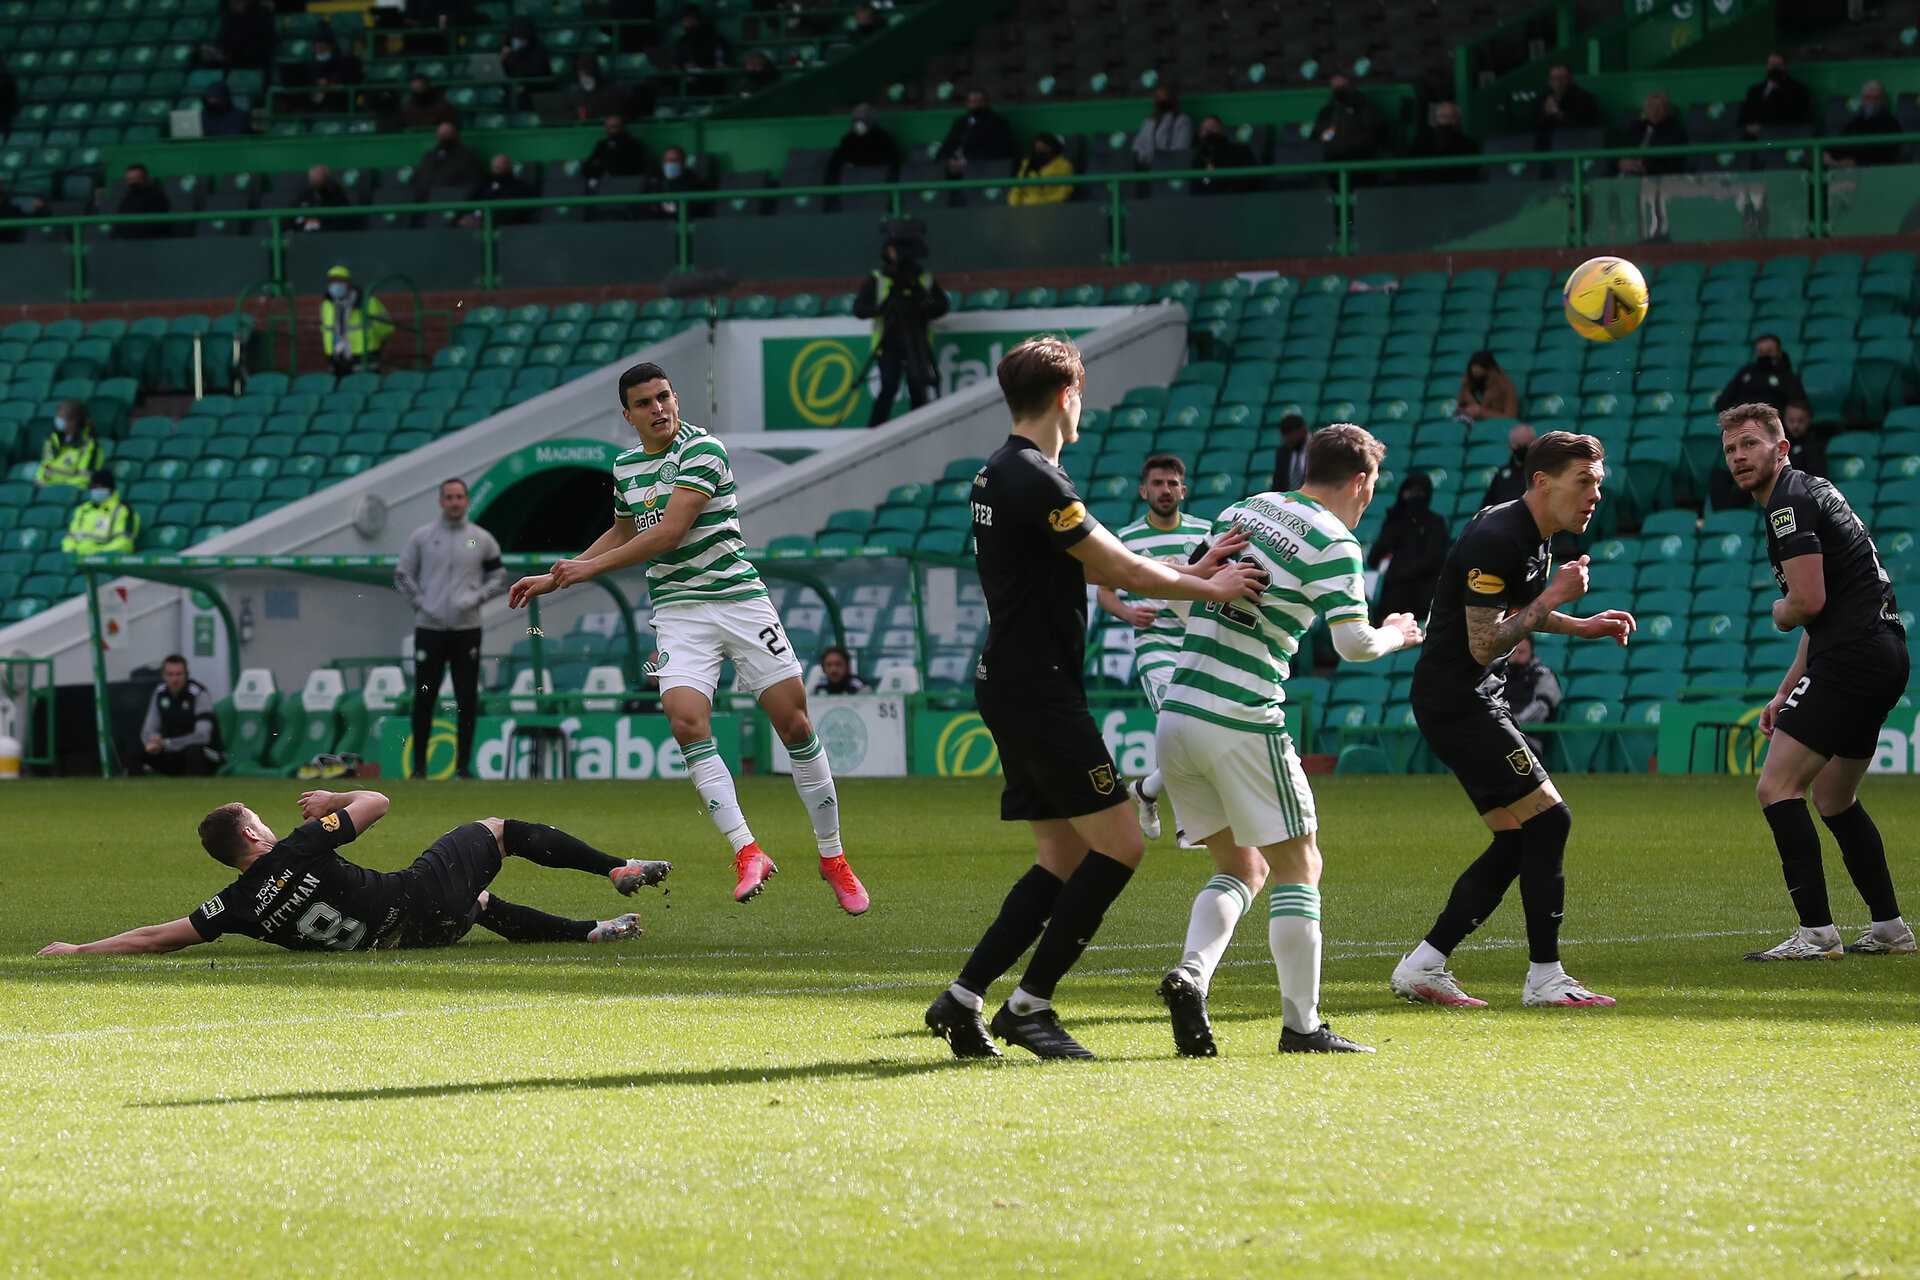 GLASGOW, SCOTLAND - APRIL 10: Mohamed Elyounoussi of Celtic  scores their team's fourth goal  during the Ladbrokes Scottish Premiership match between Celtic and Livingston at Celtic Park on April 10, 2021 in Glasgow, Scotland. Sporting stadiums around the UK remain under strict restrictions due to the Coronavirus Pandemic as Government social distancing laws prohibit fans inside venues resulting in games being played behind closed doors.  (Photo by Ian MacNicol/Getty Images)